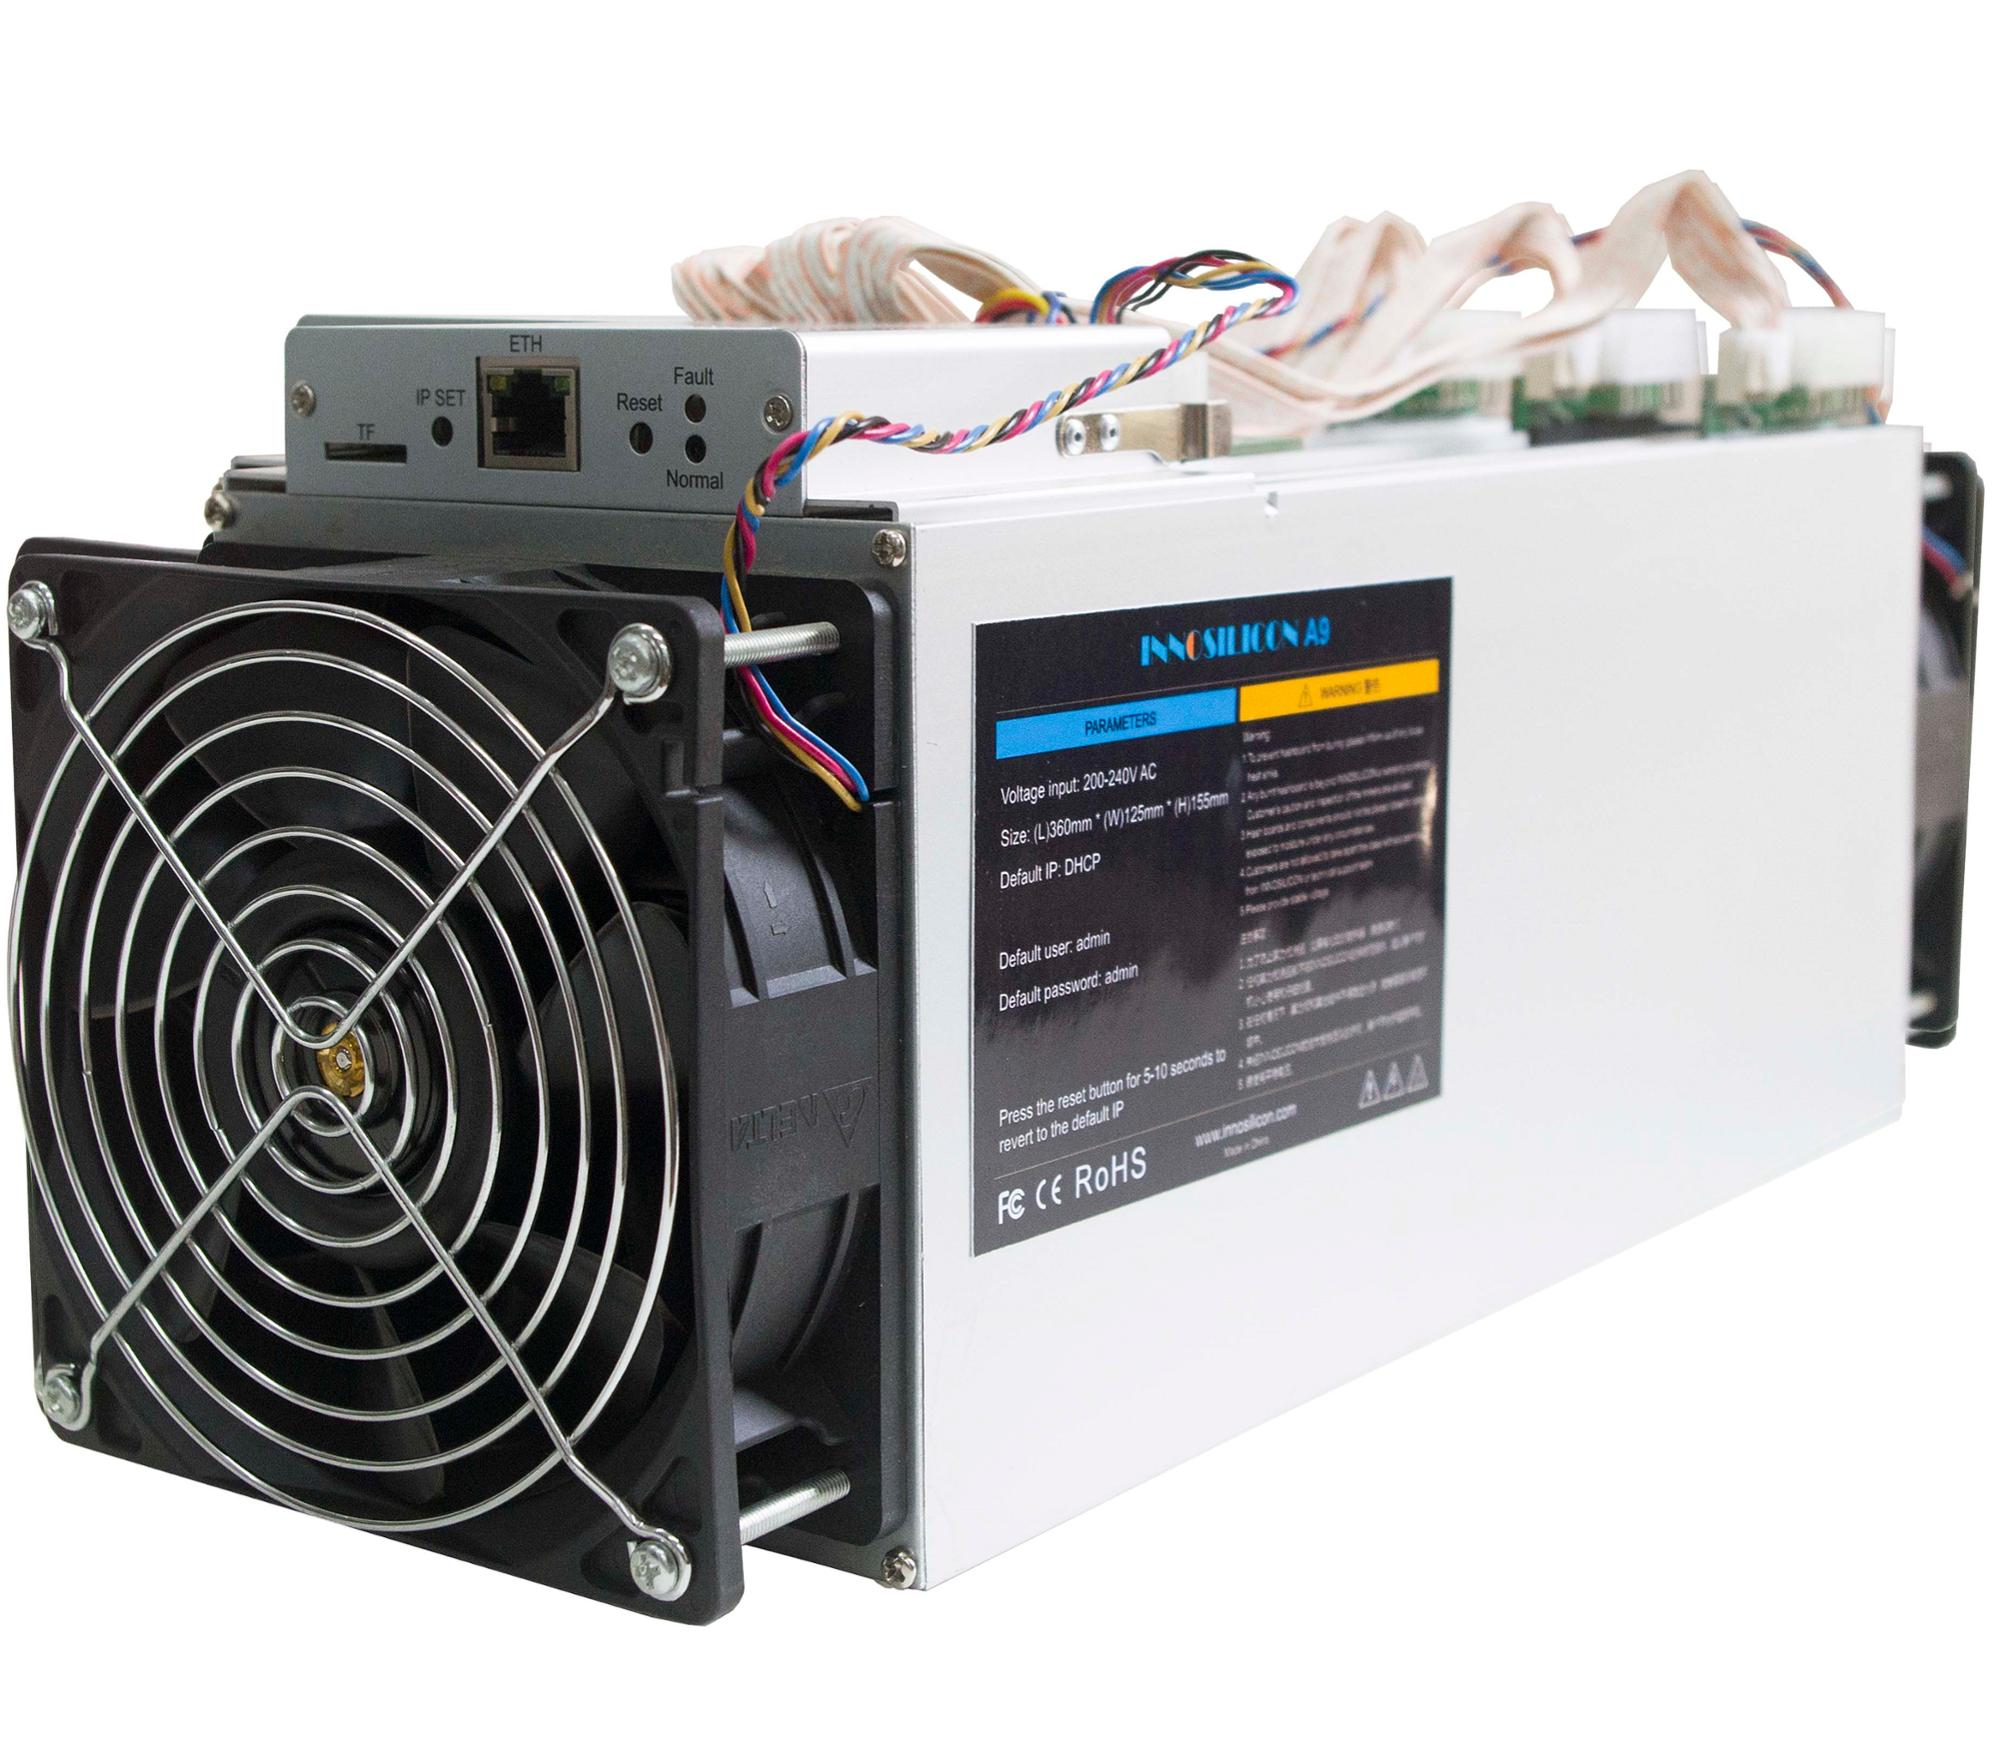 Innosilicon A9 Buy One Get One Free,Zmaster Inno A9 Zec Miner 50ksol/s,650w  Crypto Miner - Buy Innosilicon A9,A9 Miner,Crypto Miner Product on